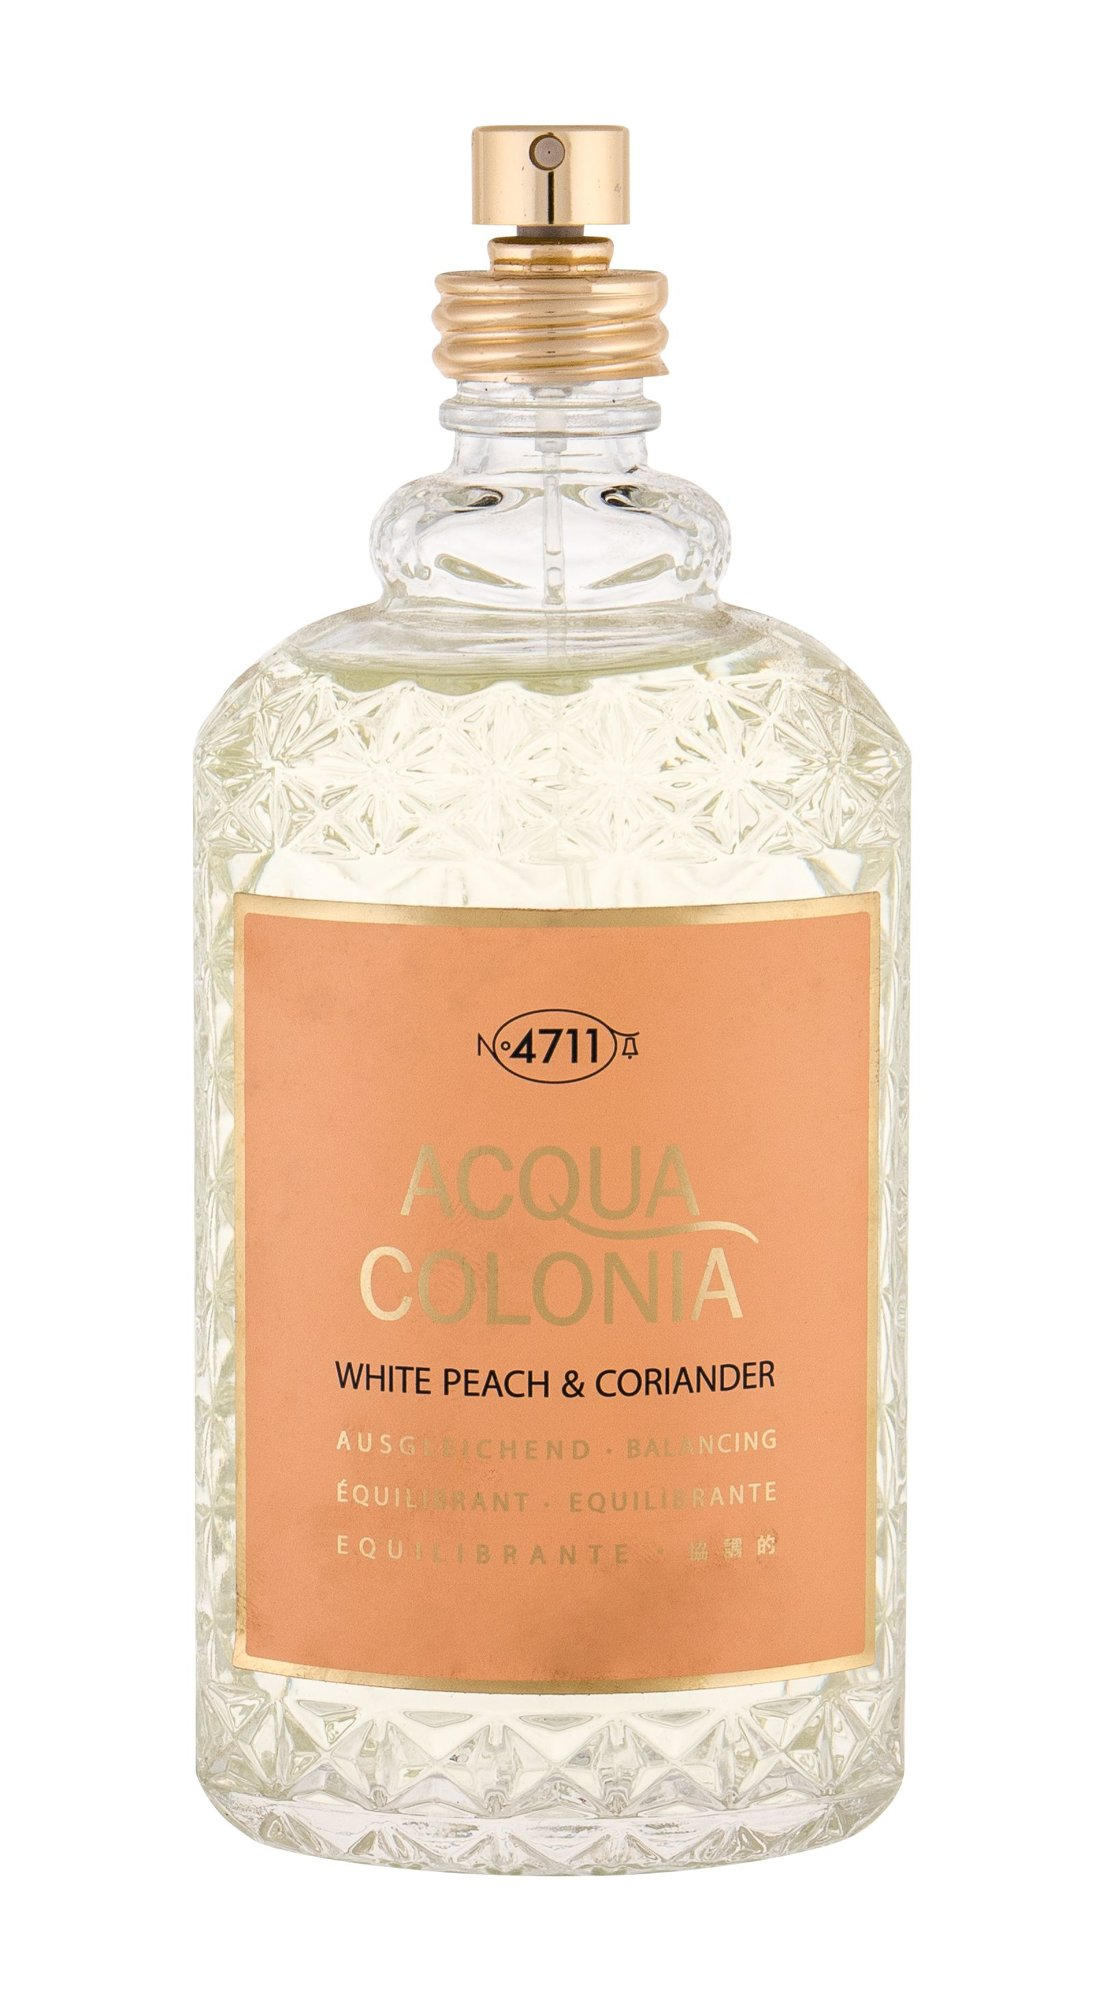 4711 Acqua Colonia White Peach & Coriander Eau de Cologne 170ml